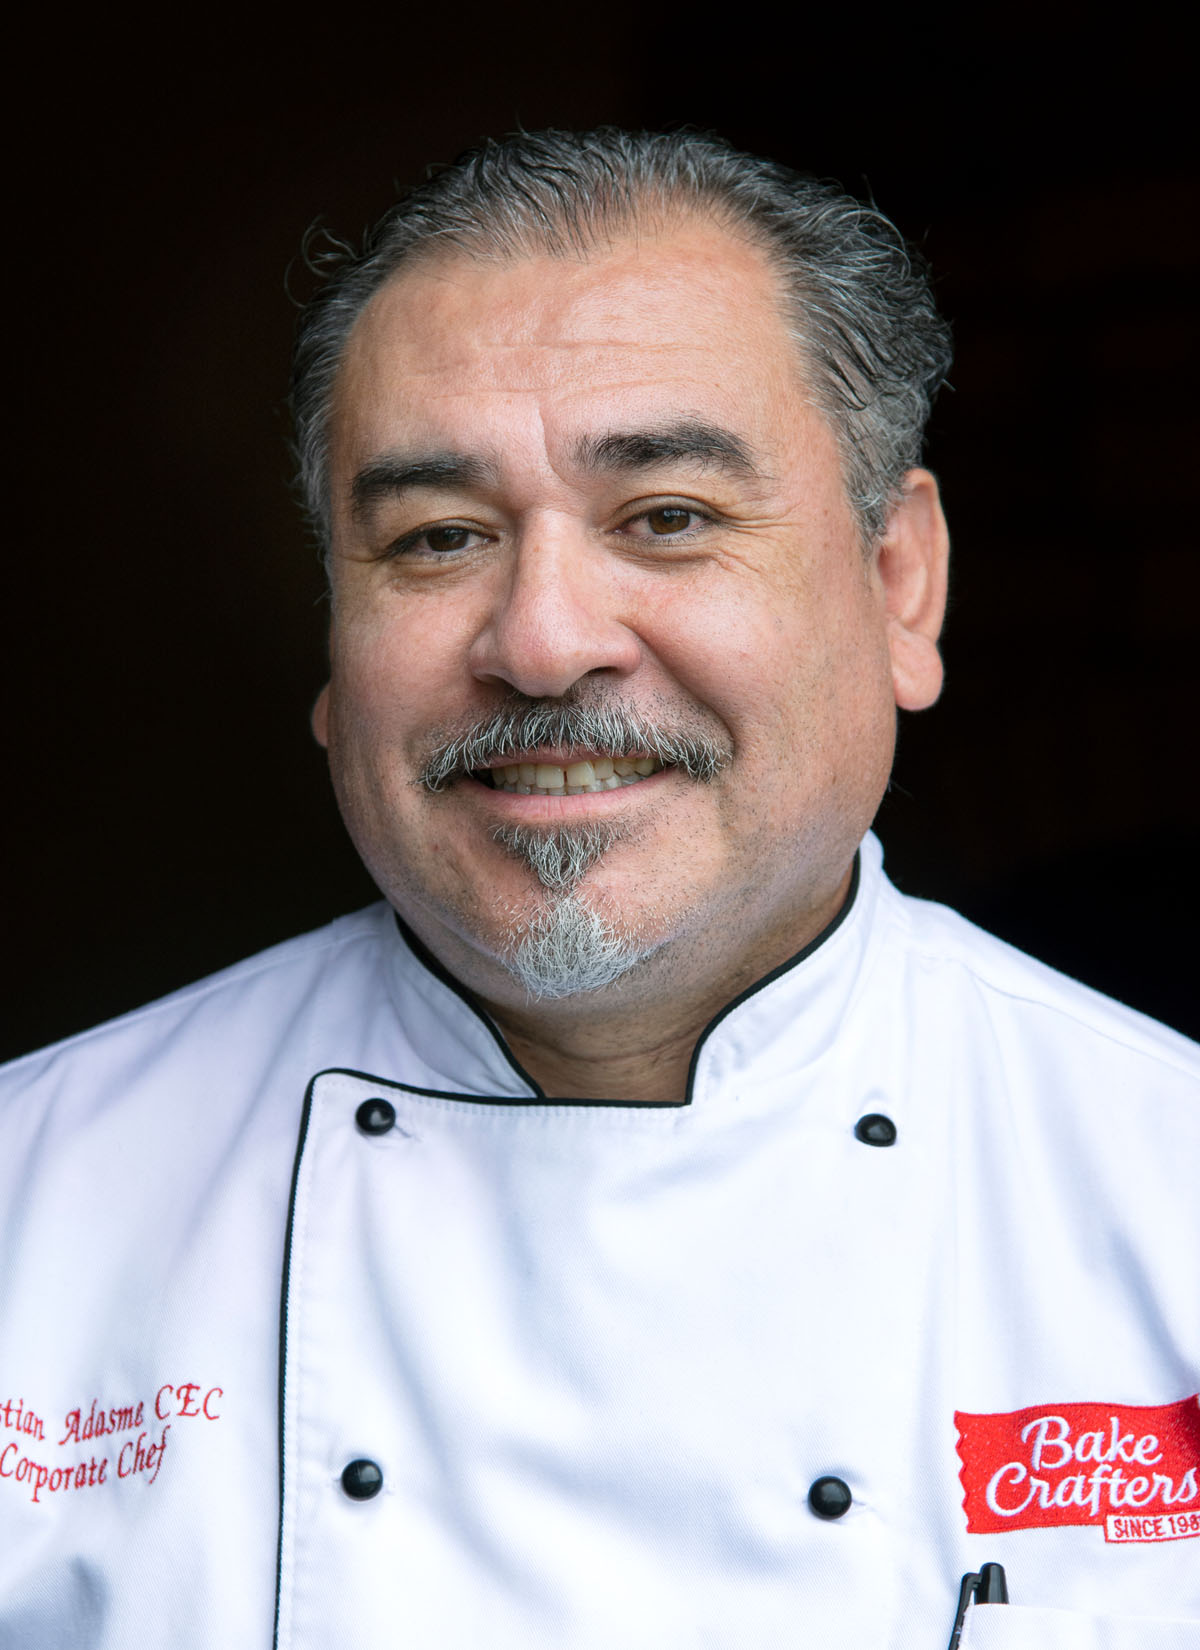 Chef Cristian Adasme, Corporate Chef